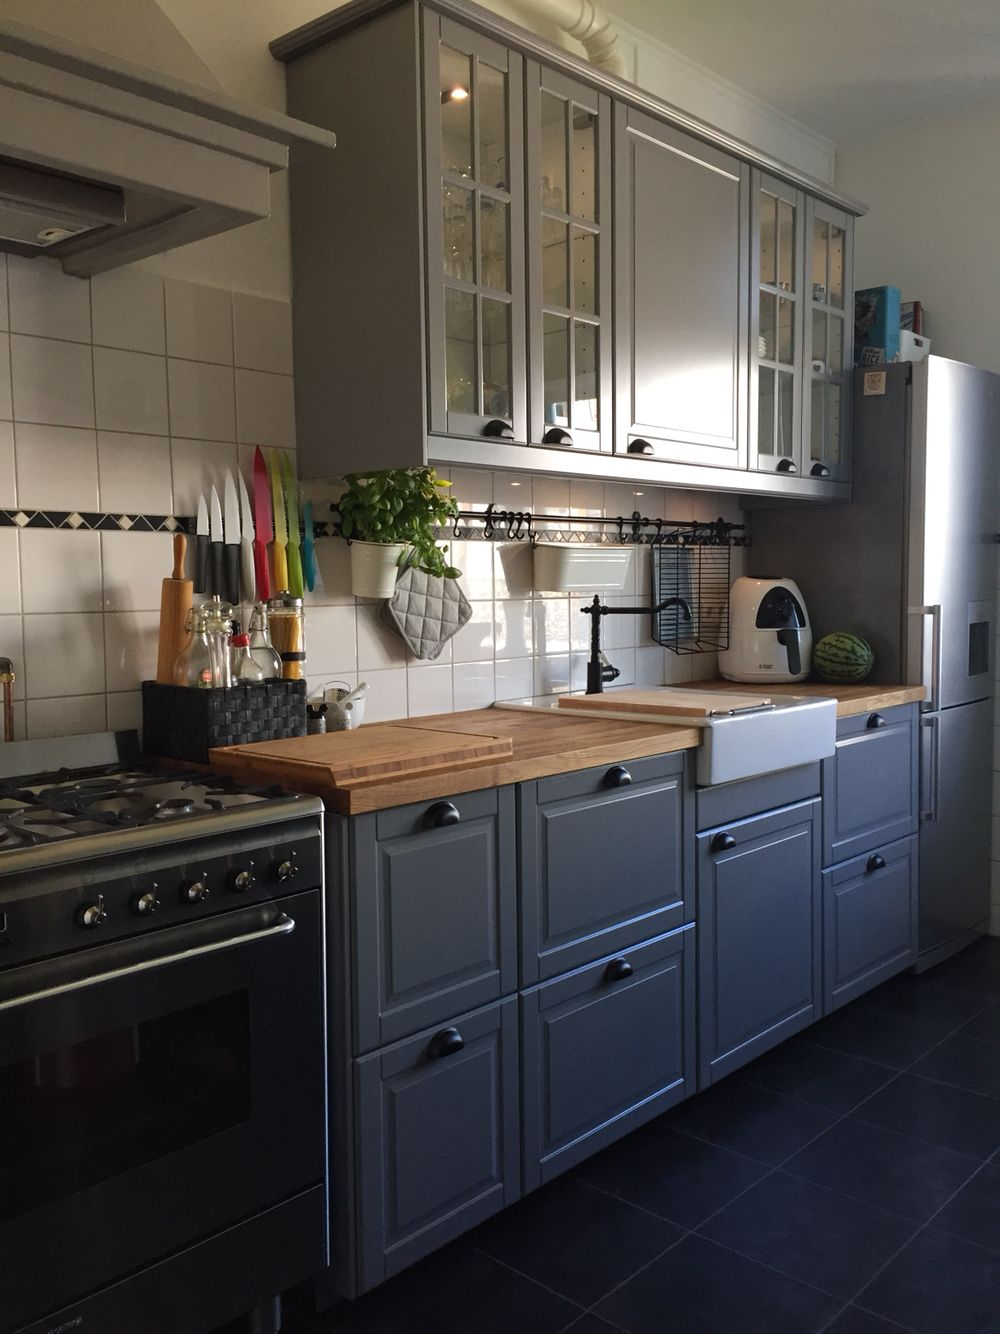 Best New Kitchen Ikea Bodbyn Grey Kitchen Inspiration 400 x 300